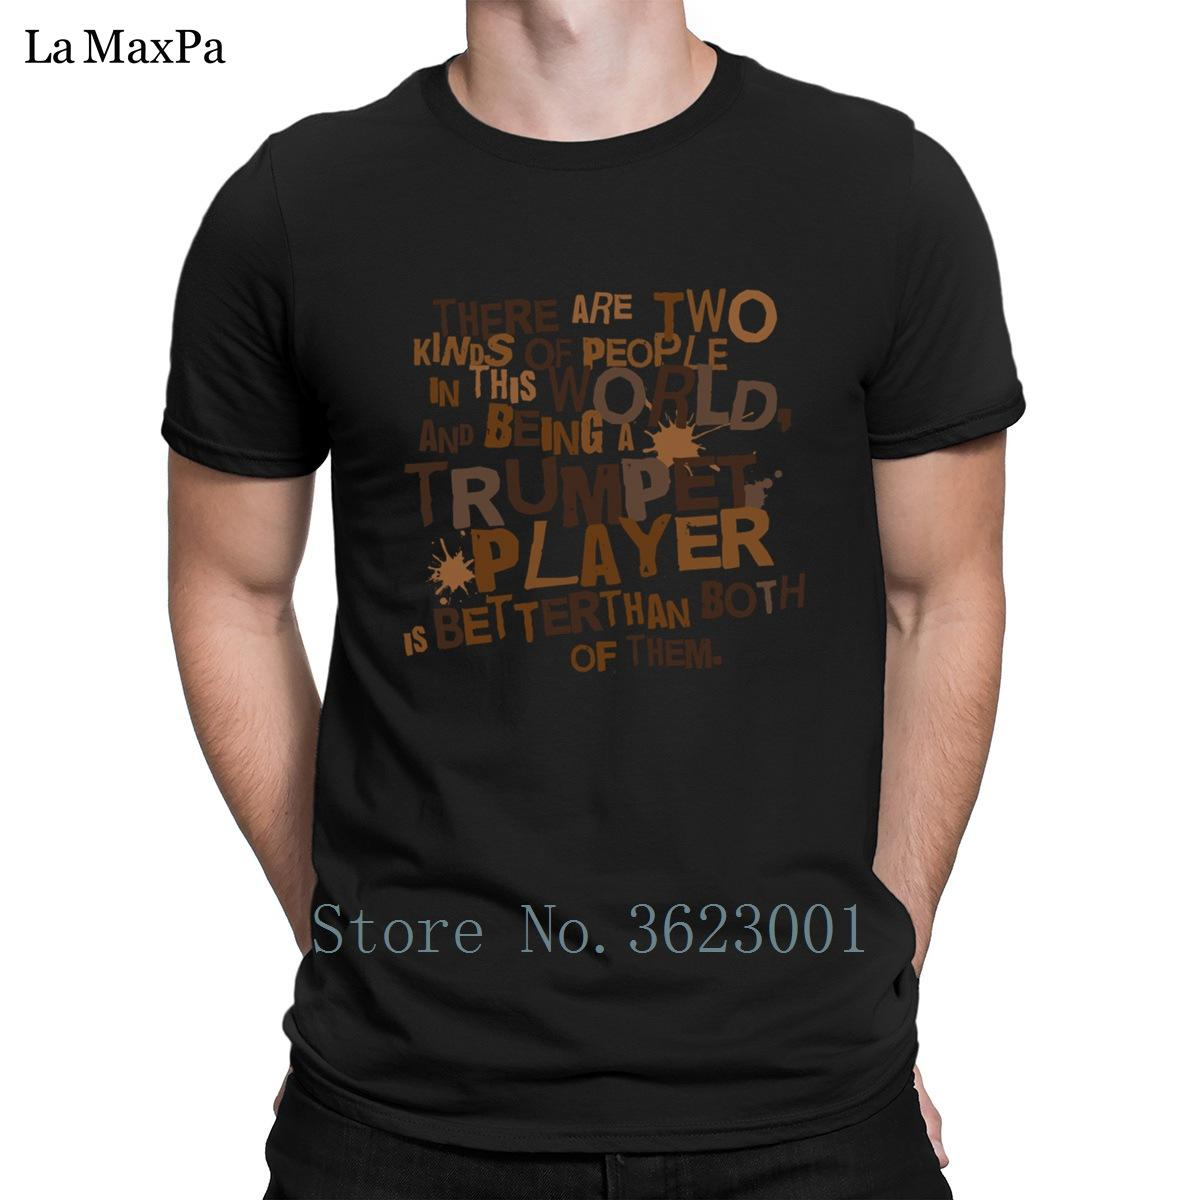 2518d1886a Customize Formal T Shirt Summer 2 Kinds Of People Trumpet Men T Shirt  Popular Quirky Mens Tshirt Cotton Tee Shirt Top Quality Tee Shirt Designers  Funny ...